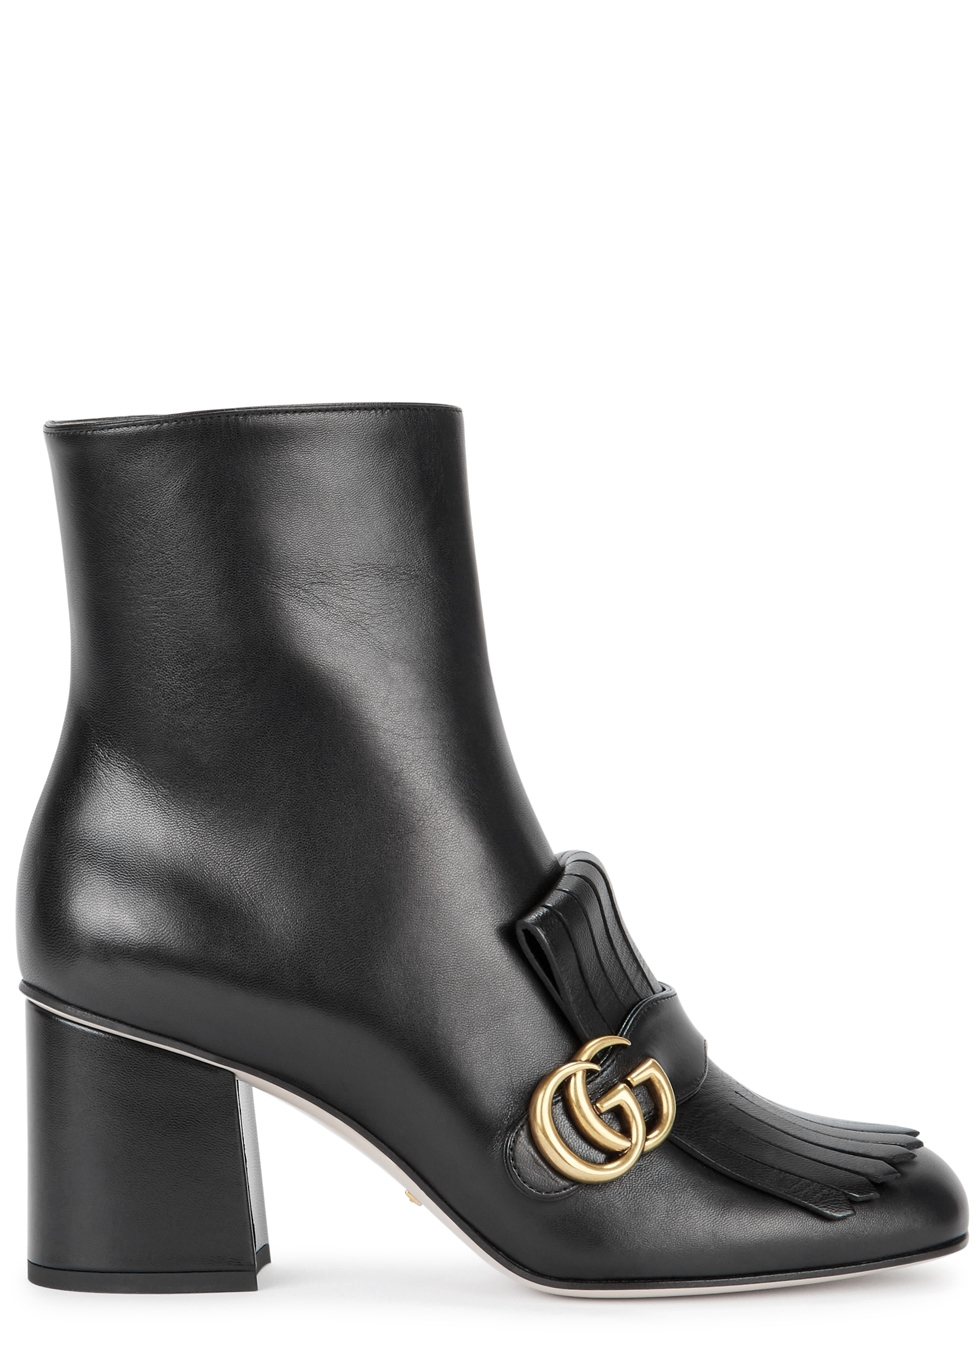 GG Marmont 75 black leather ankle boots